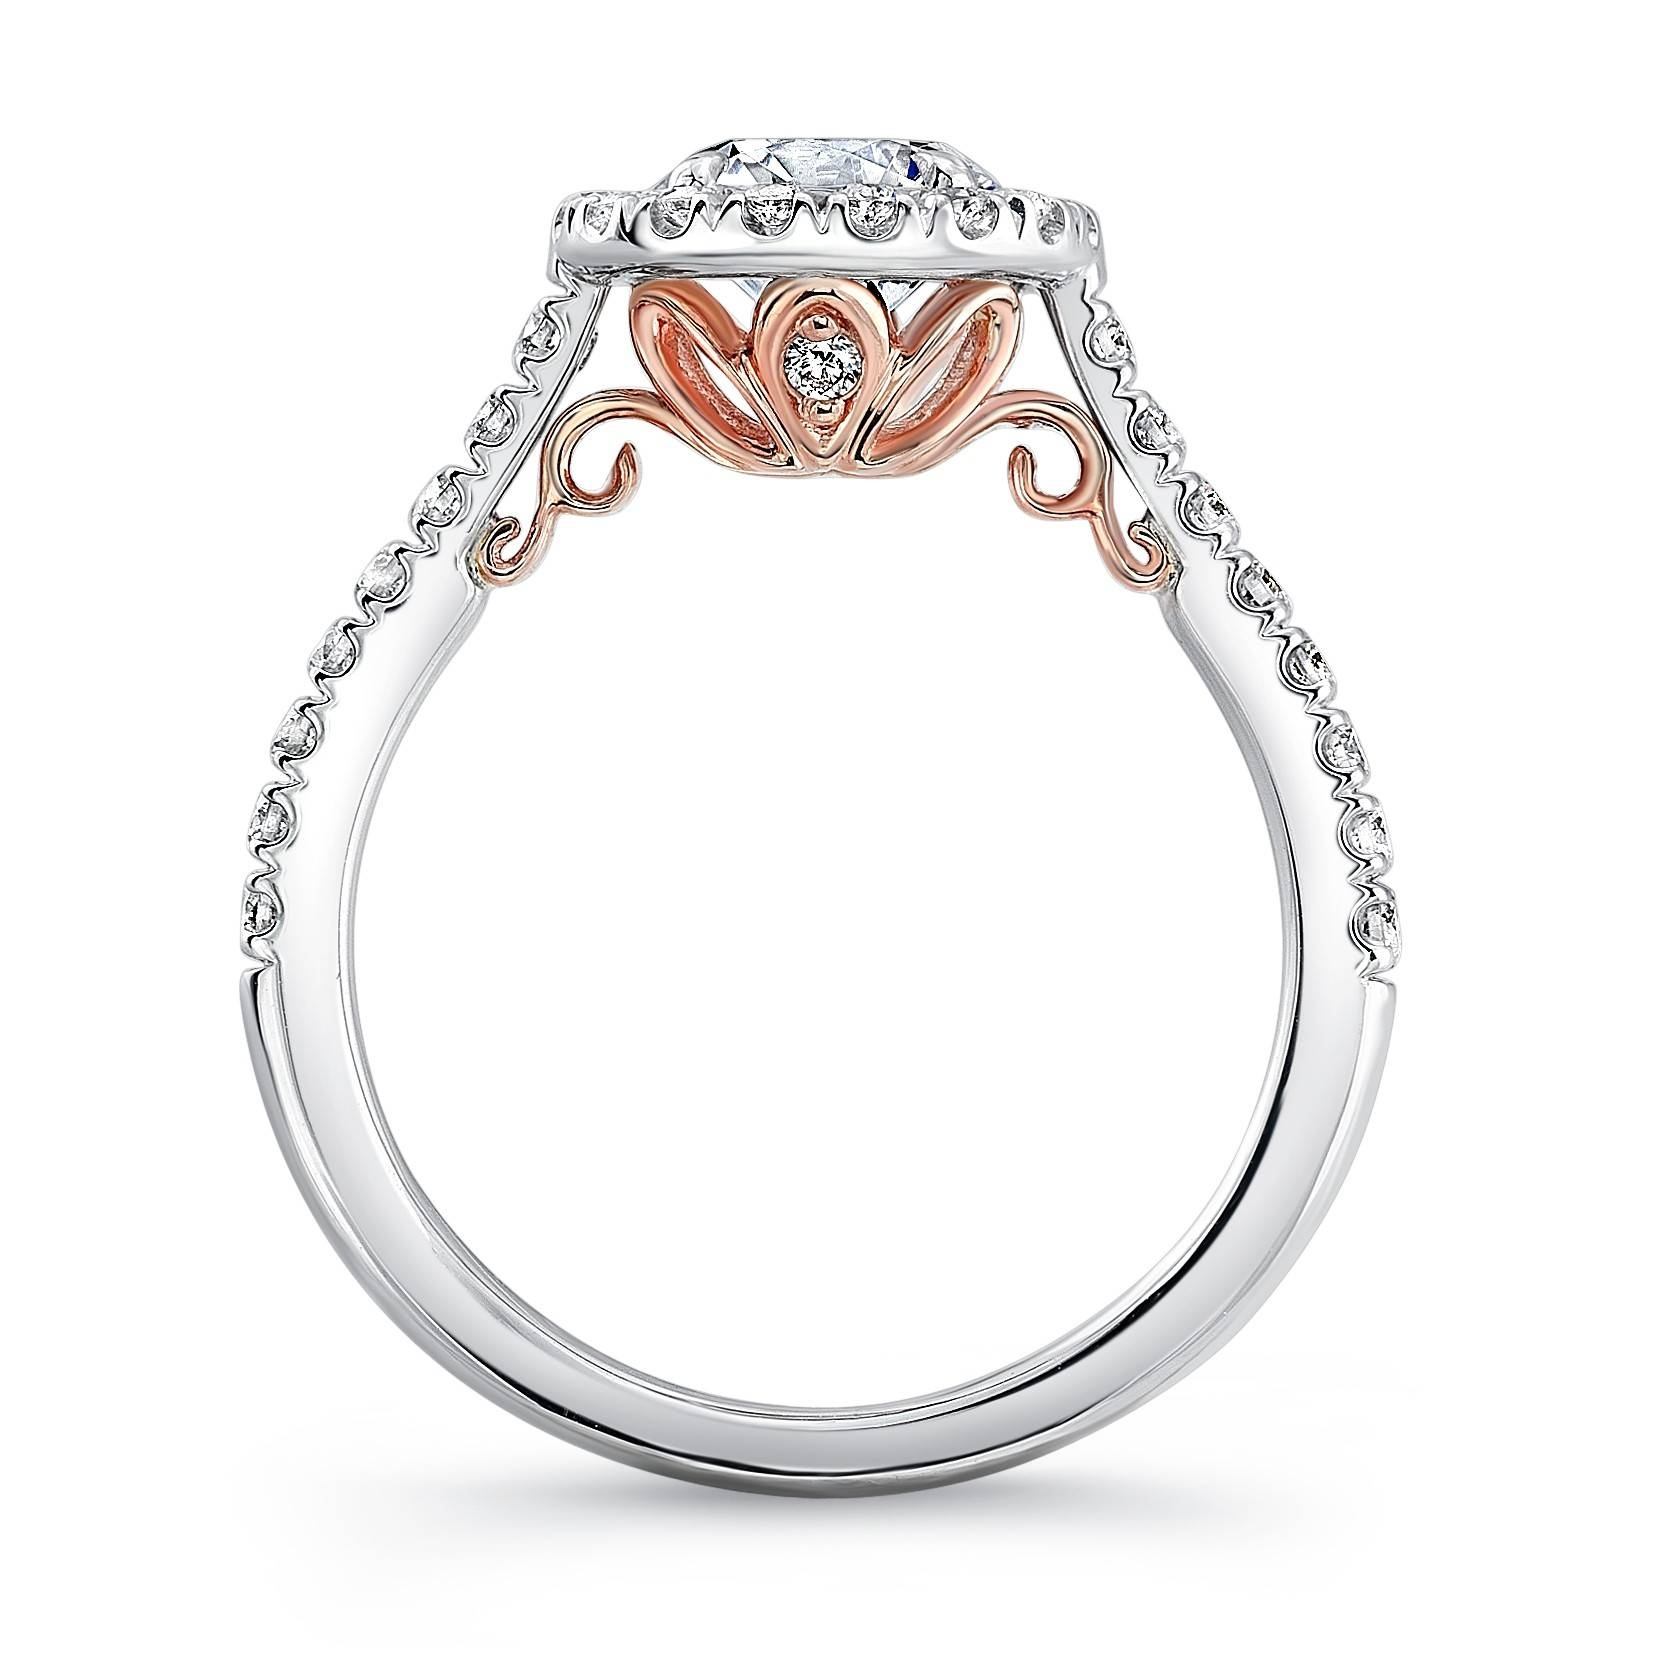 Uneek Fiorire Round Diamond & Cushion Halo Engagement Ring With Regard To Embedded Diamond Engagement Rings (Gallery 5 of 15)